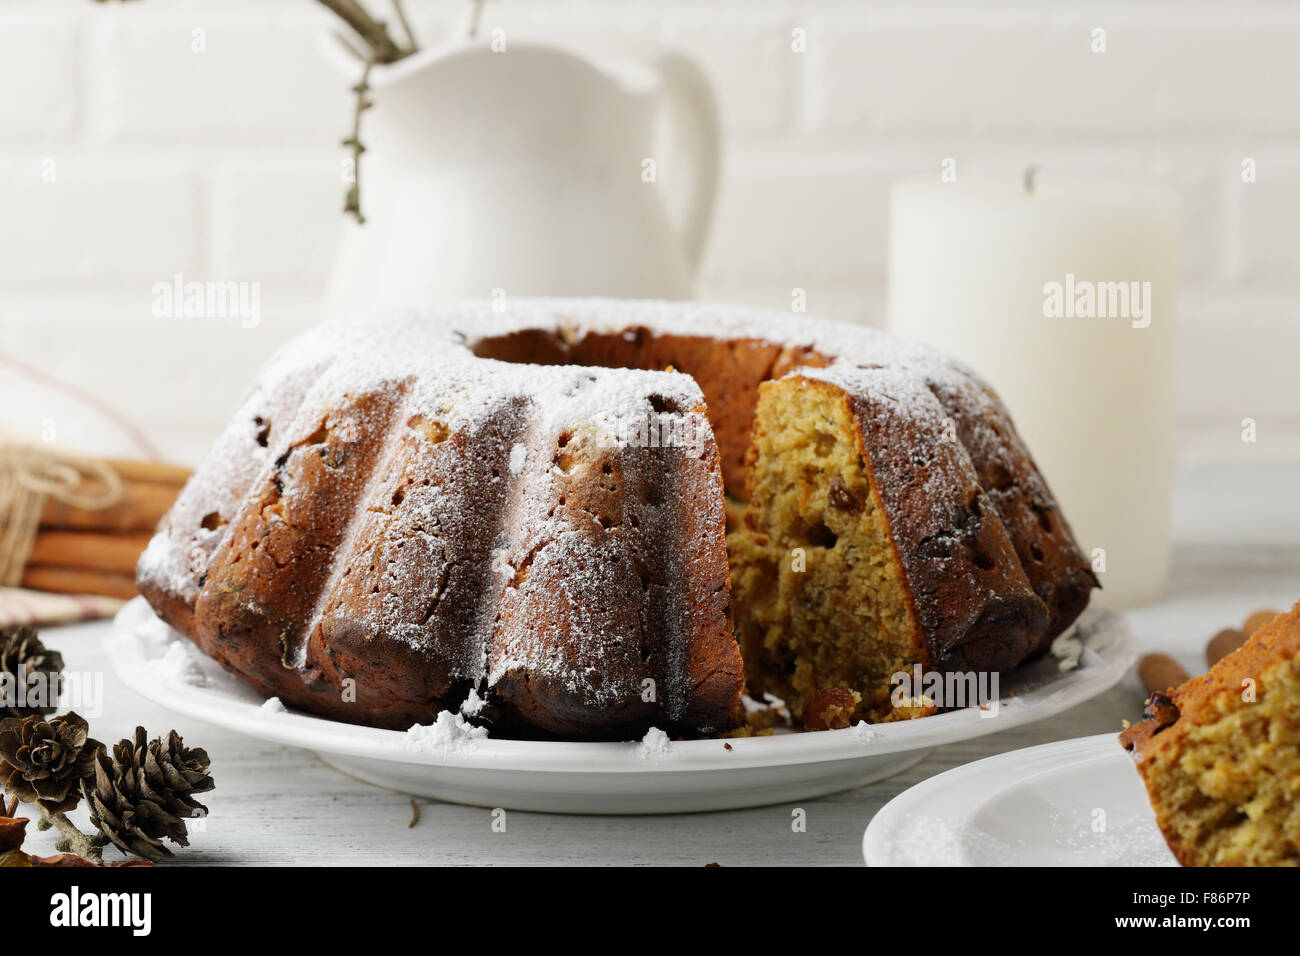 christmas cake, food closeup - Stock Image